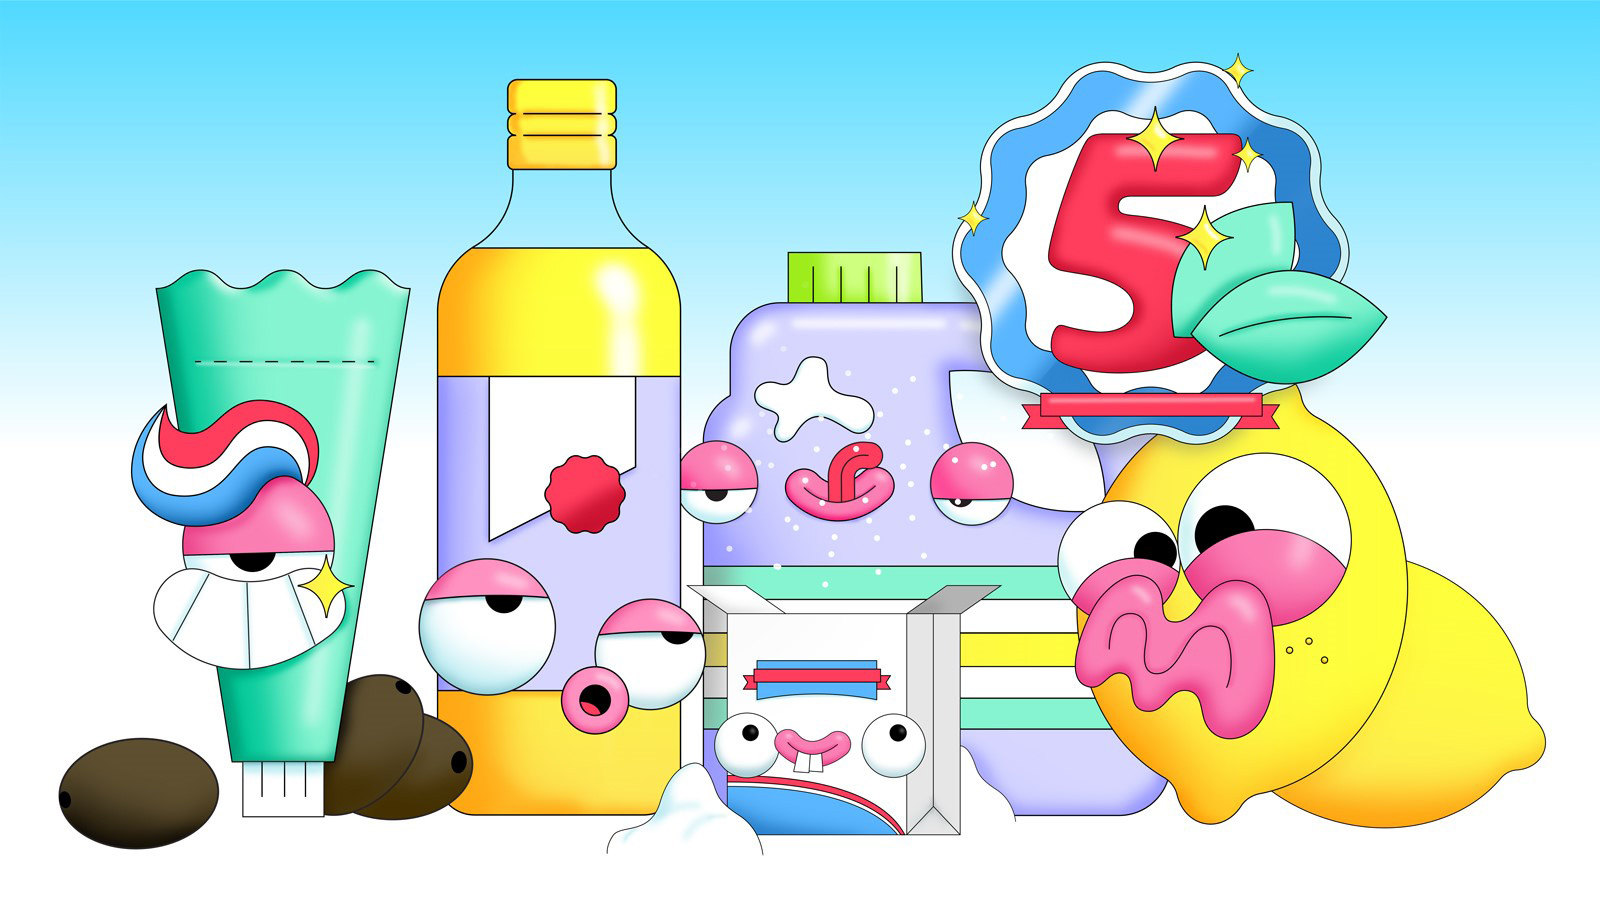 Illustration of toothpaste, oil, bicarb and lemon characters for story about cleaning products found in the pantry